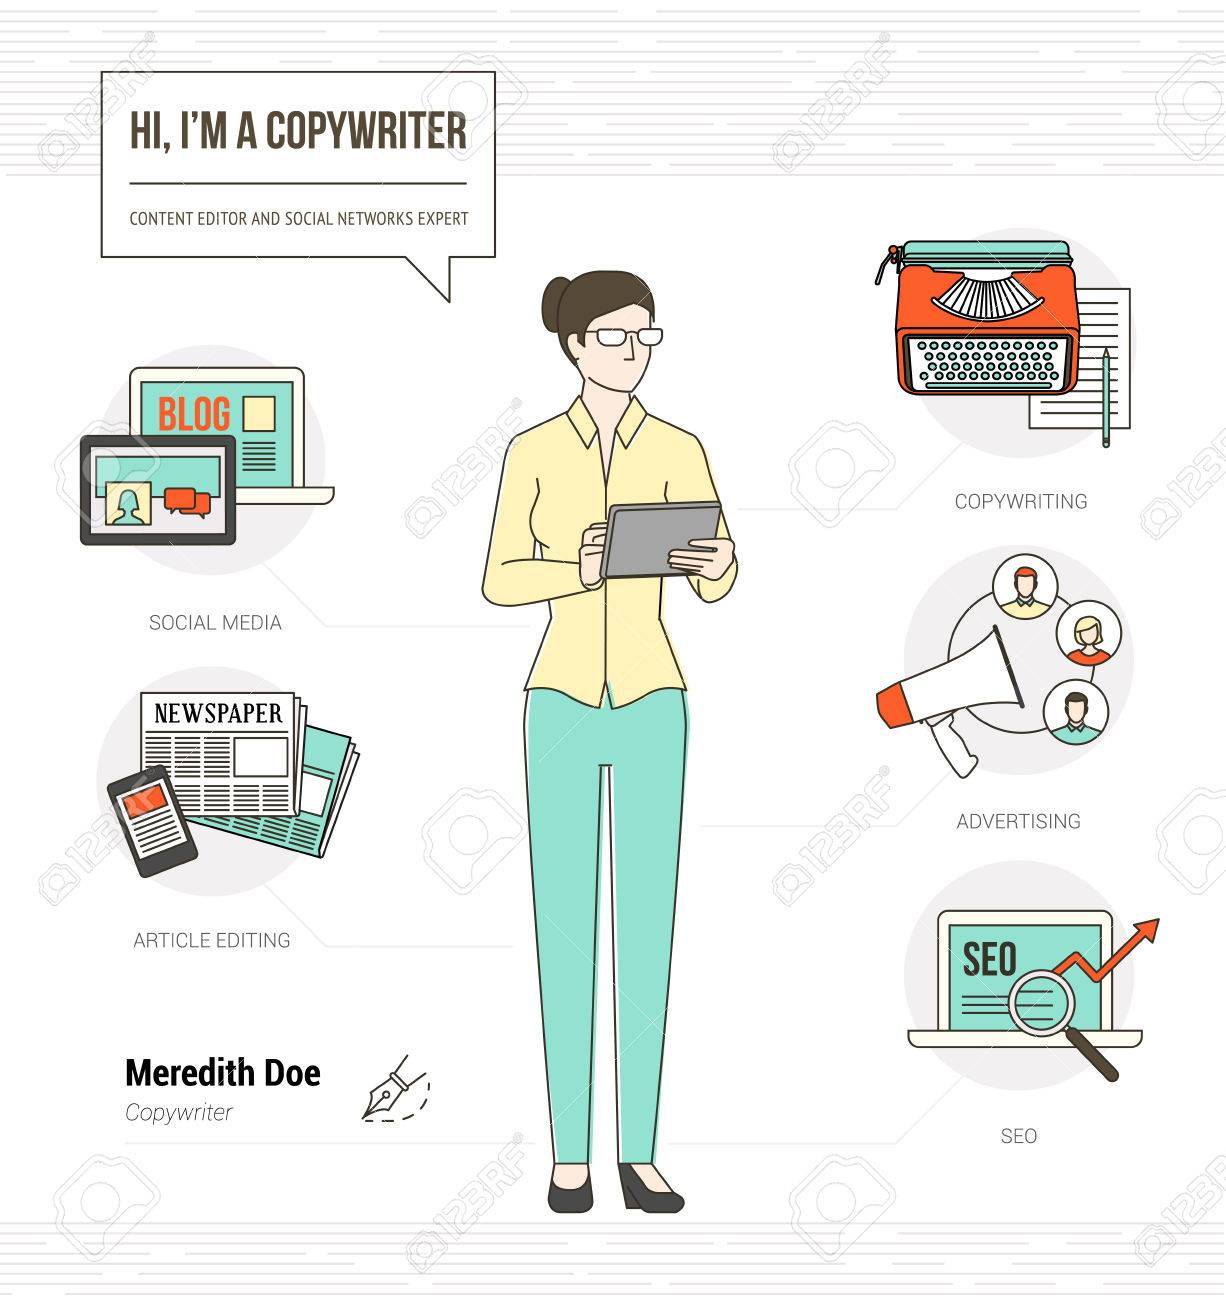 Professional copywriter infographic skills resume with icons